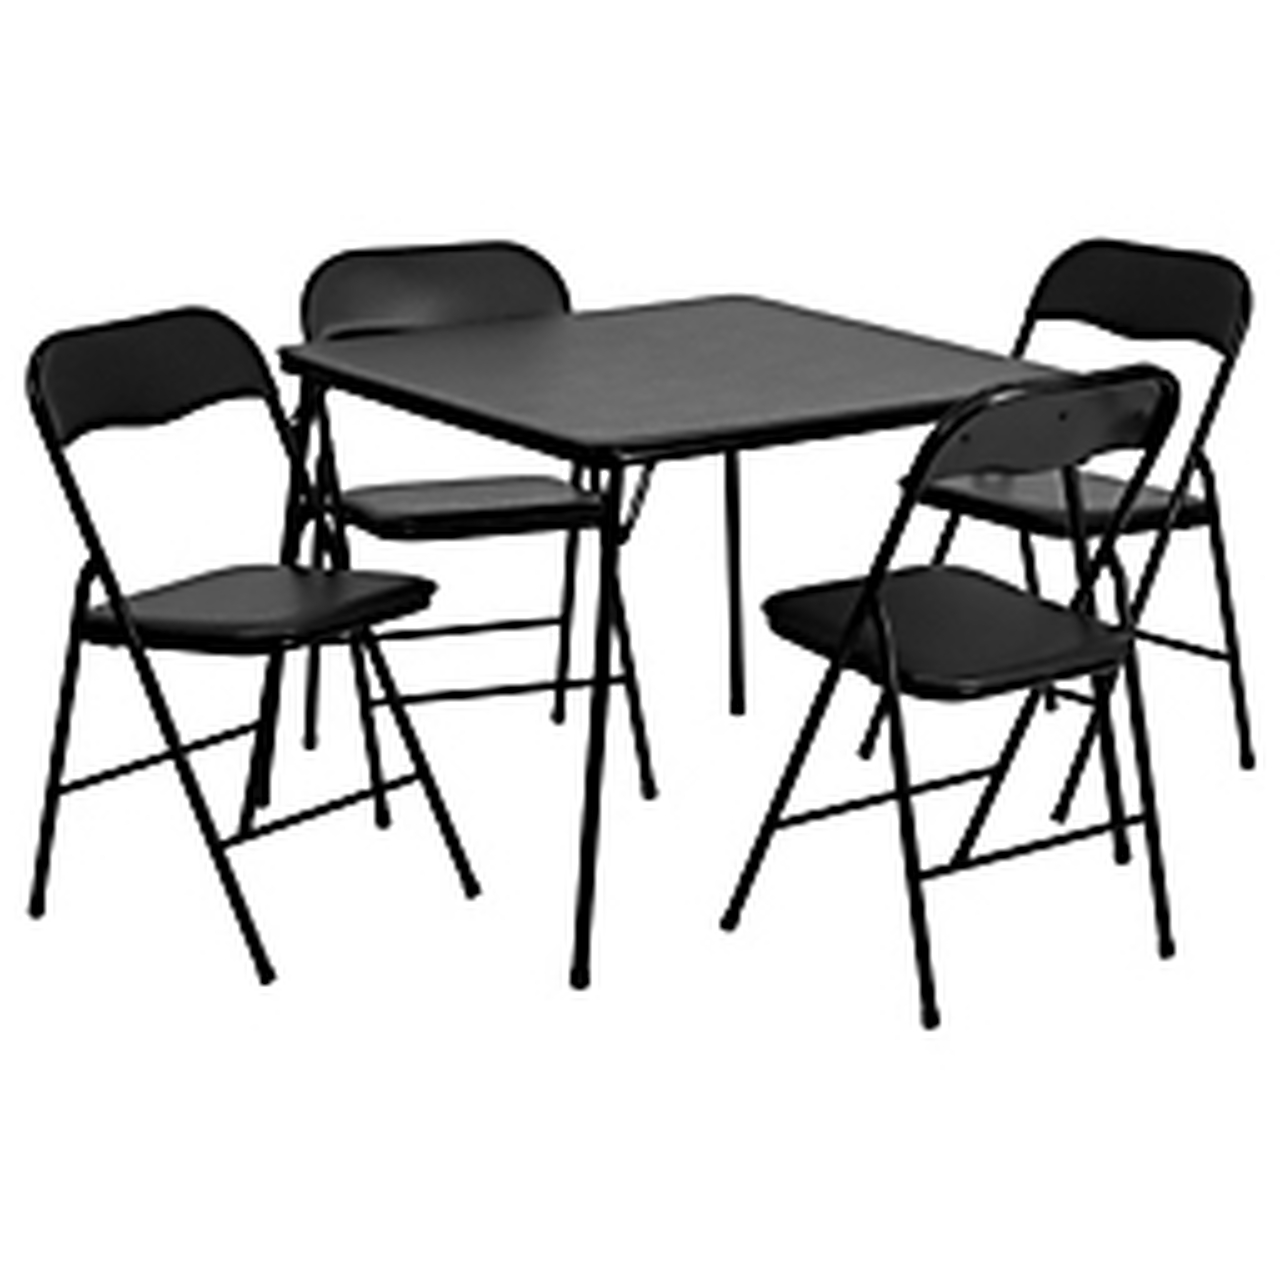 - JB-1-GG - Flash Furniture - Folding Table & Chair Set - Square